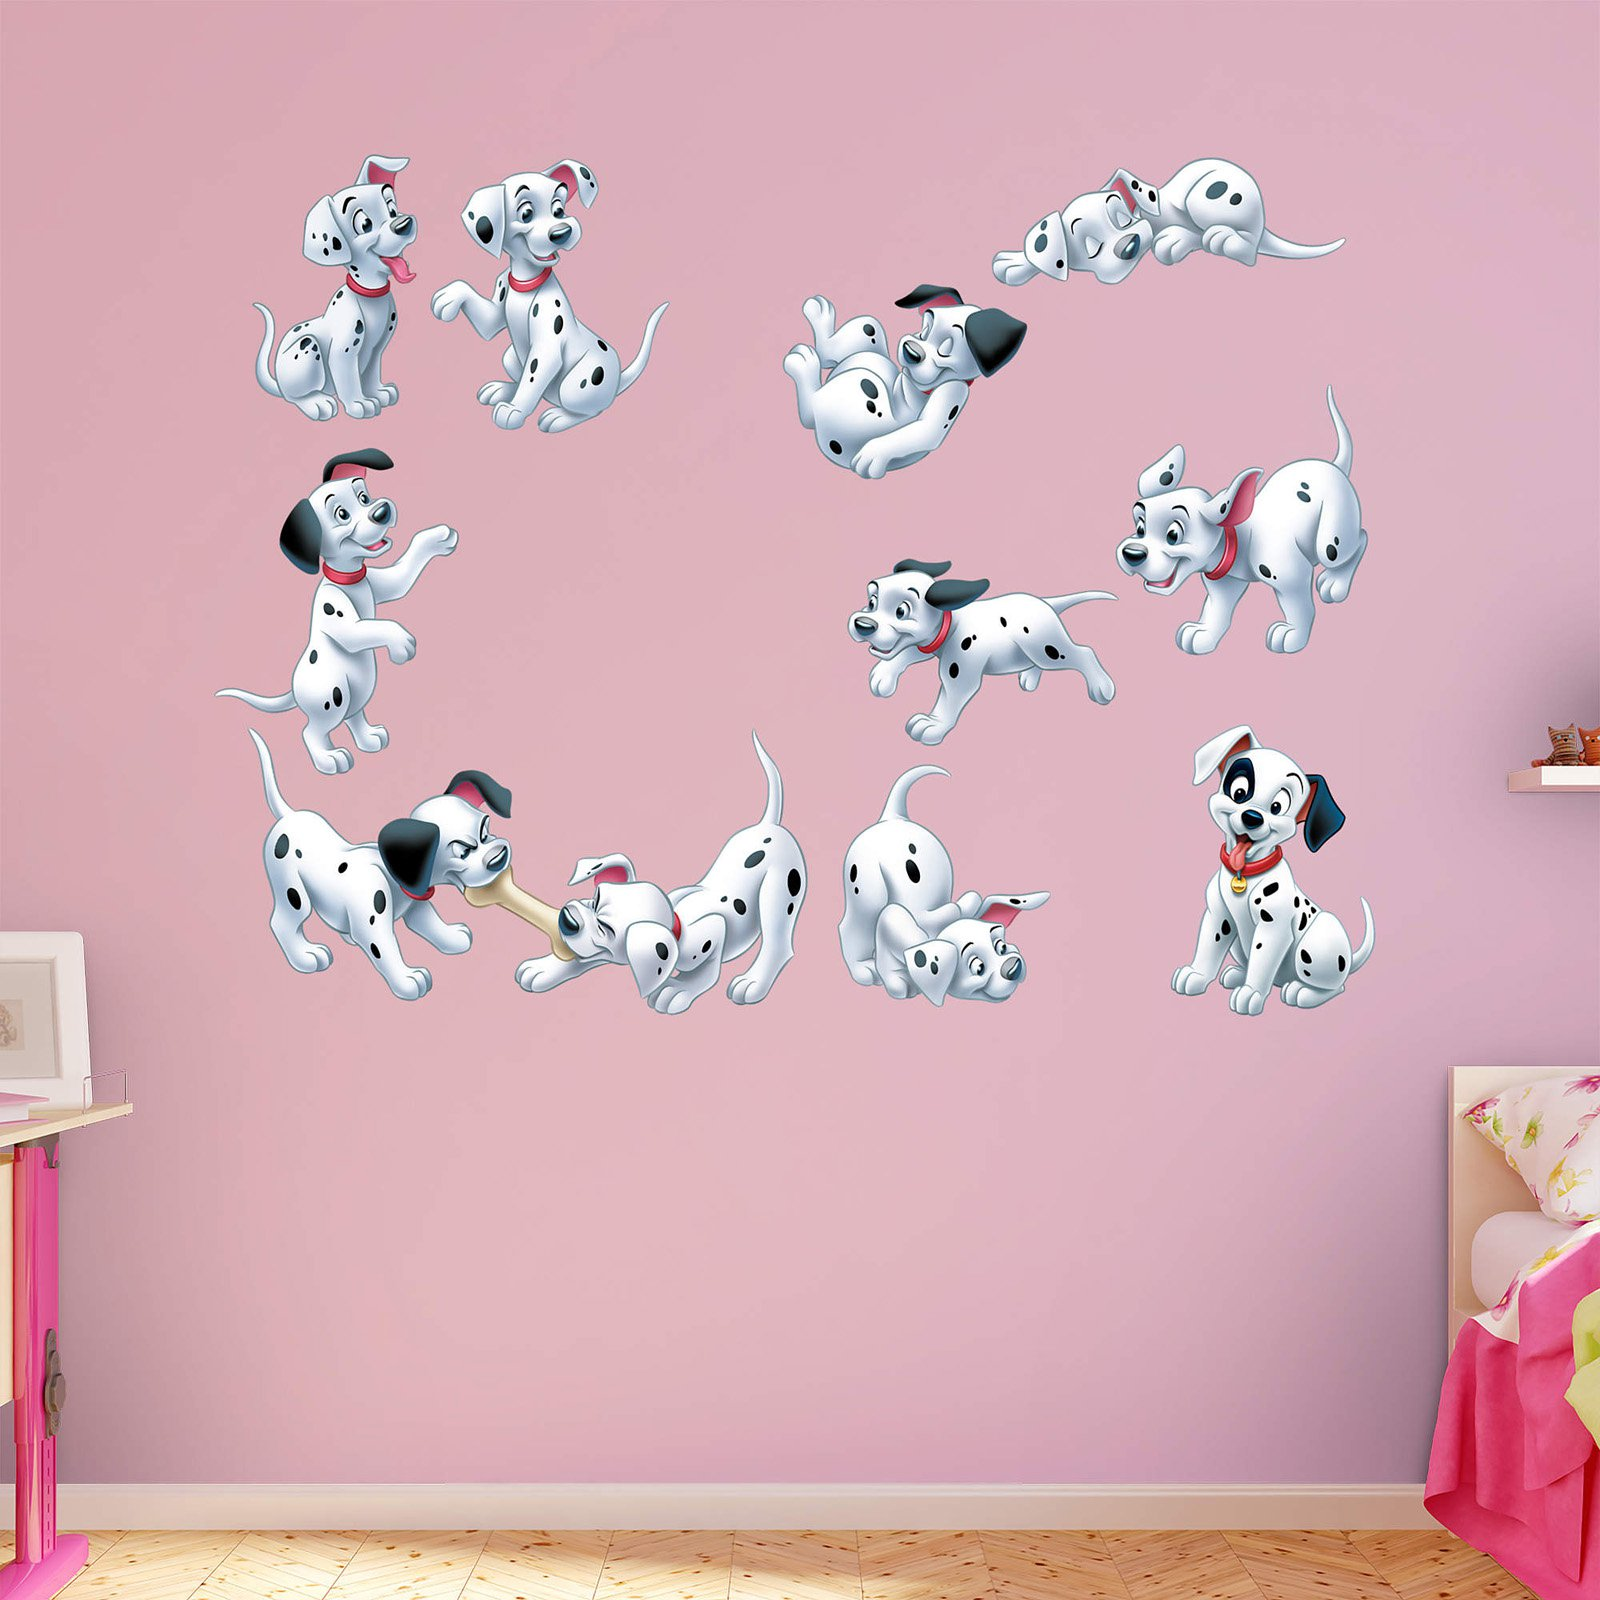 Fathead 101 Dalmatians Puppy Wall Decal Collection